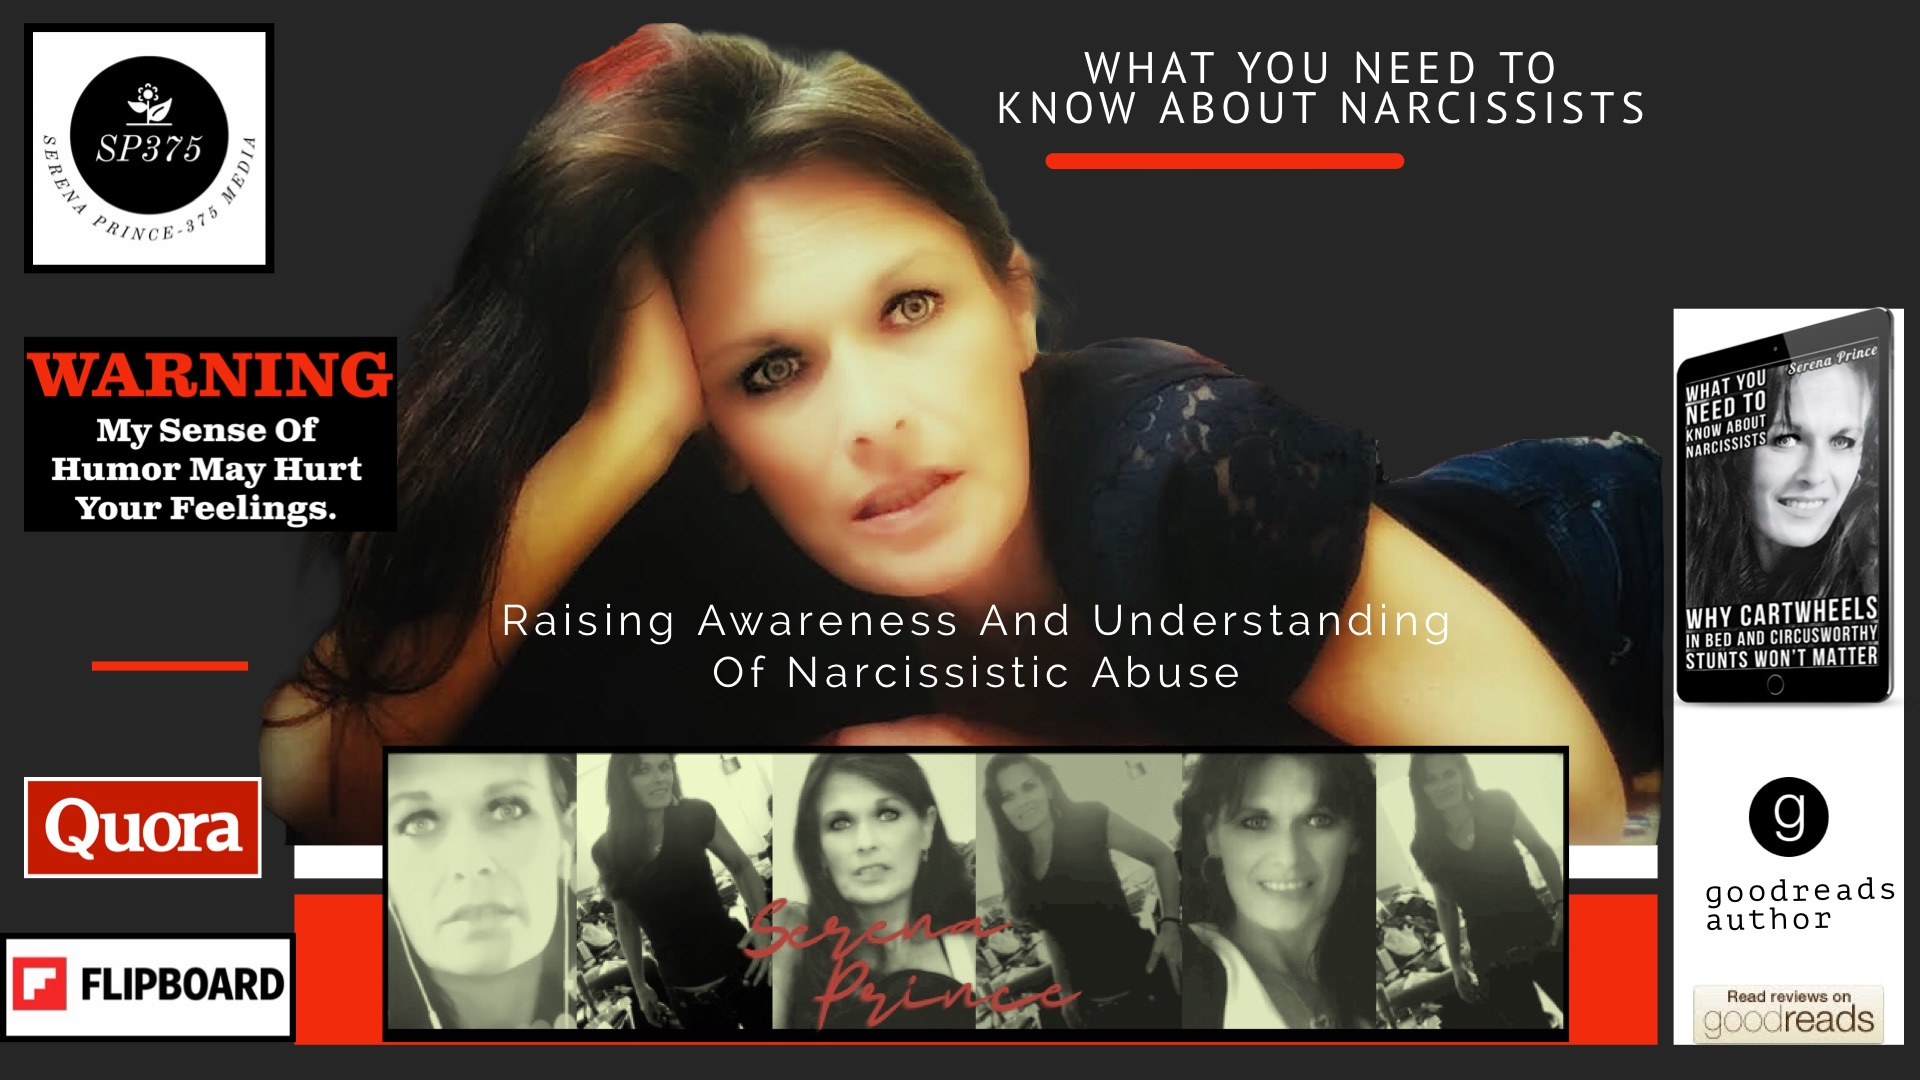 What You Need To Know About Narcissists